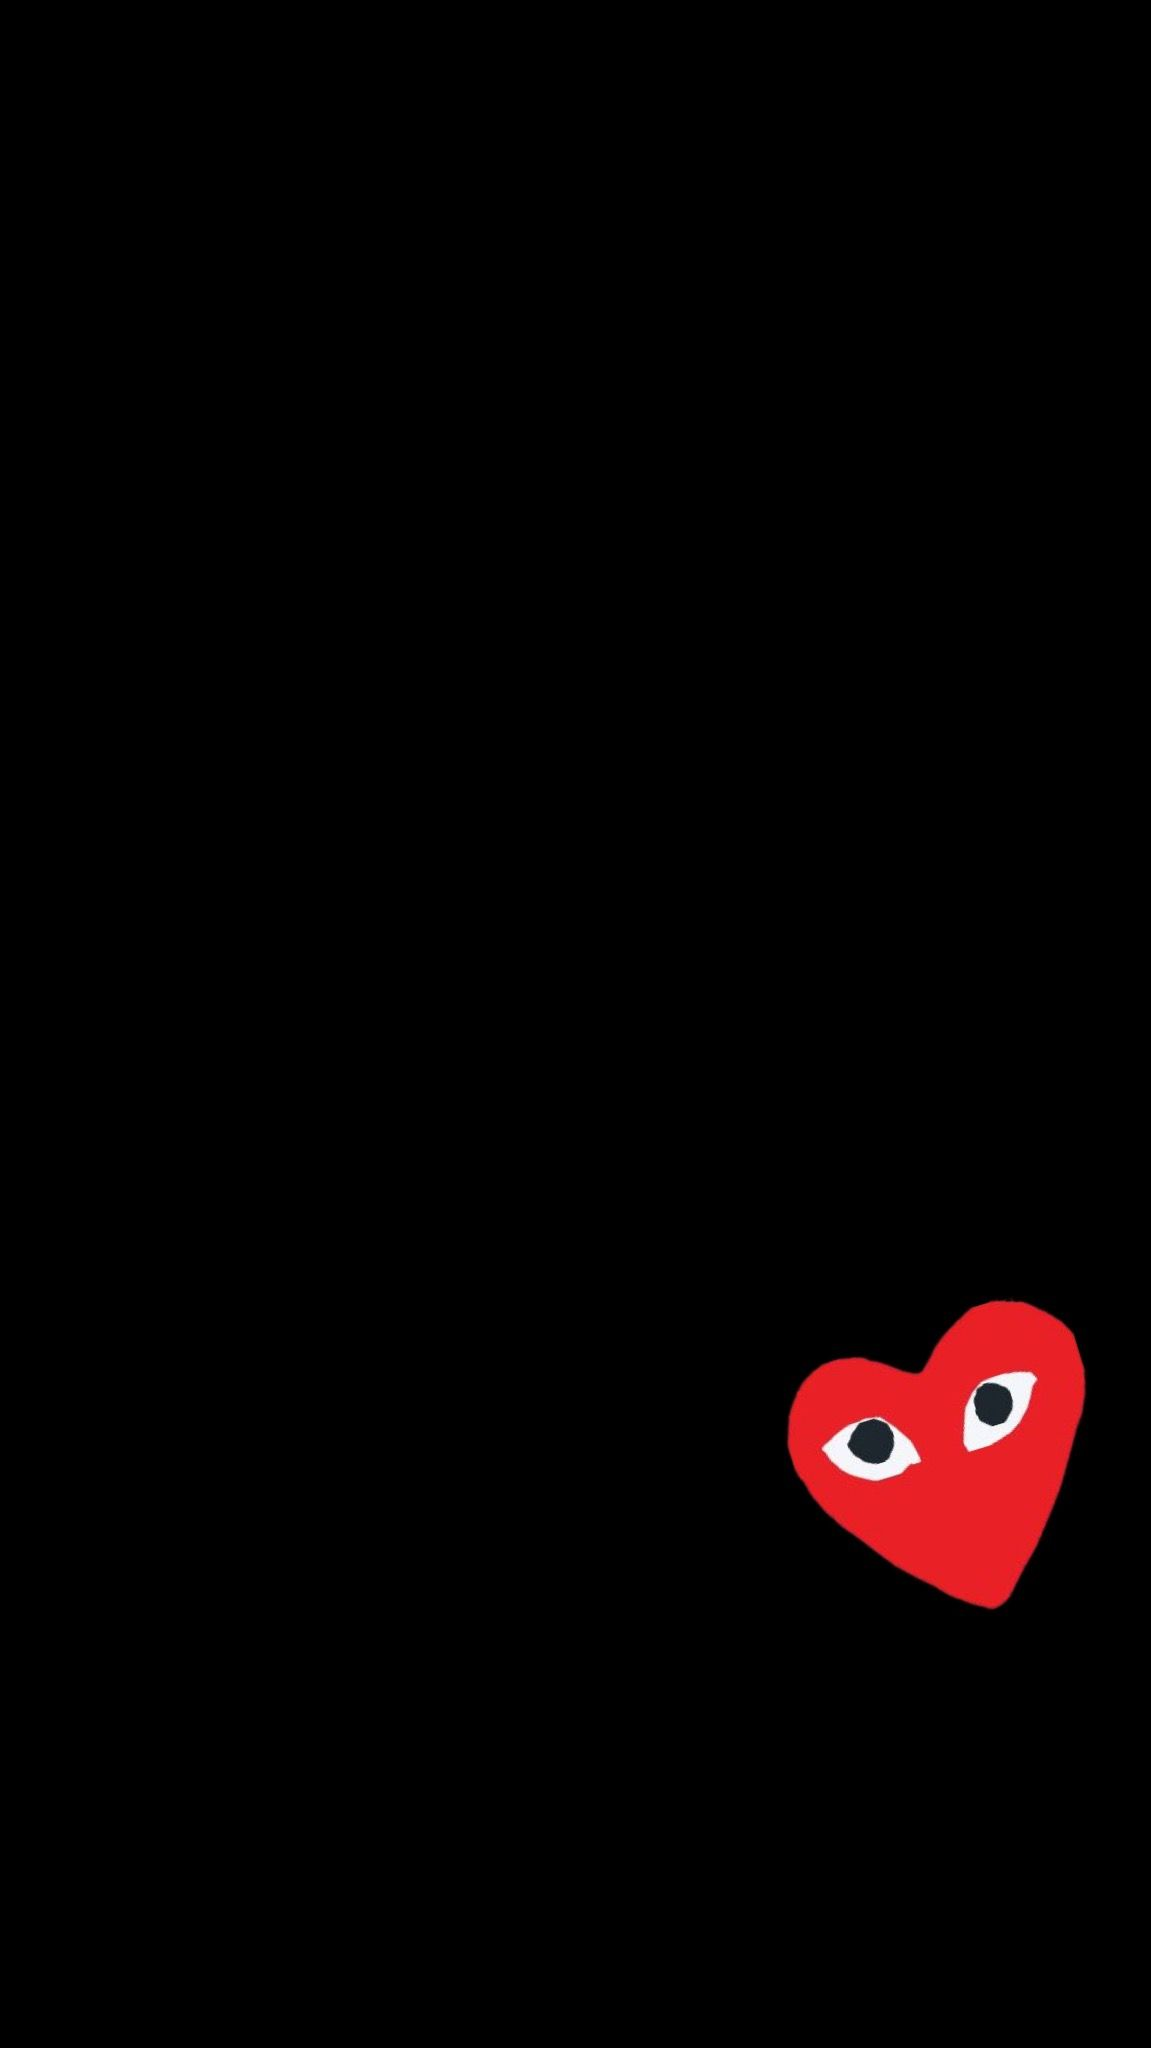 Cdg Wallpaper True Black Wallpaper Hypebeast Designer